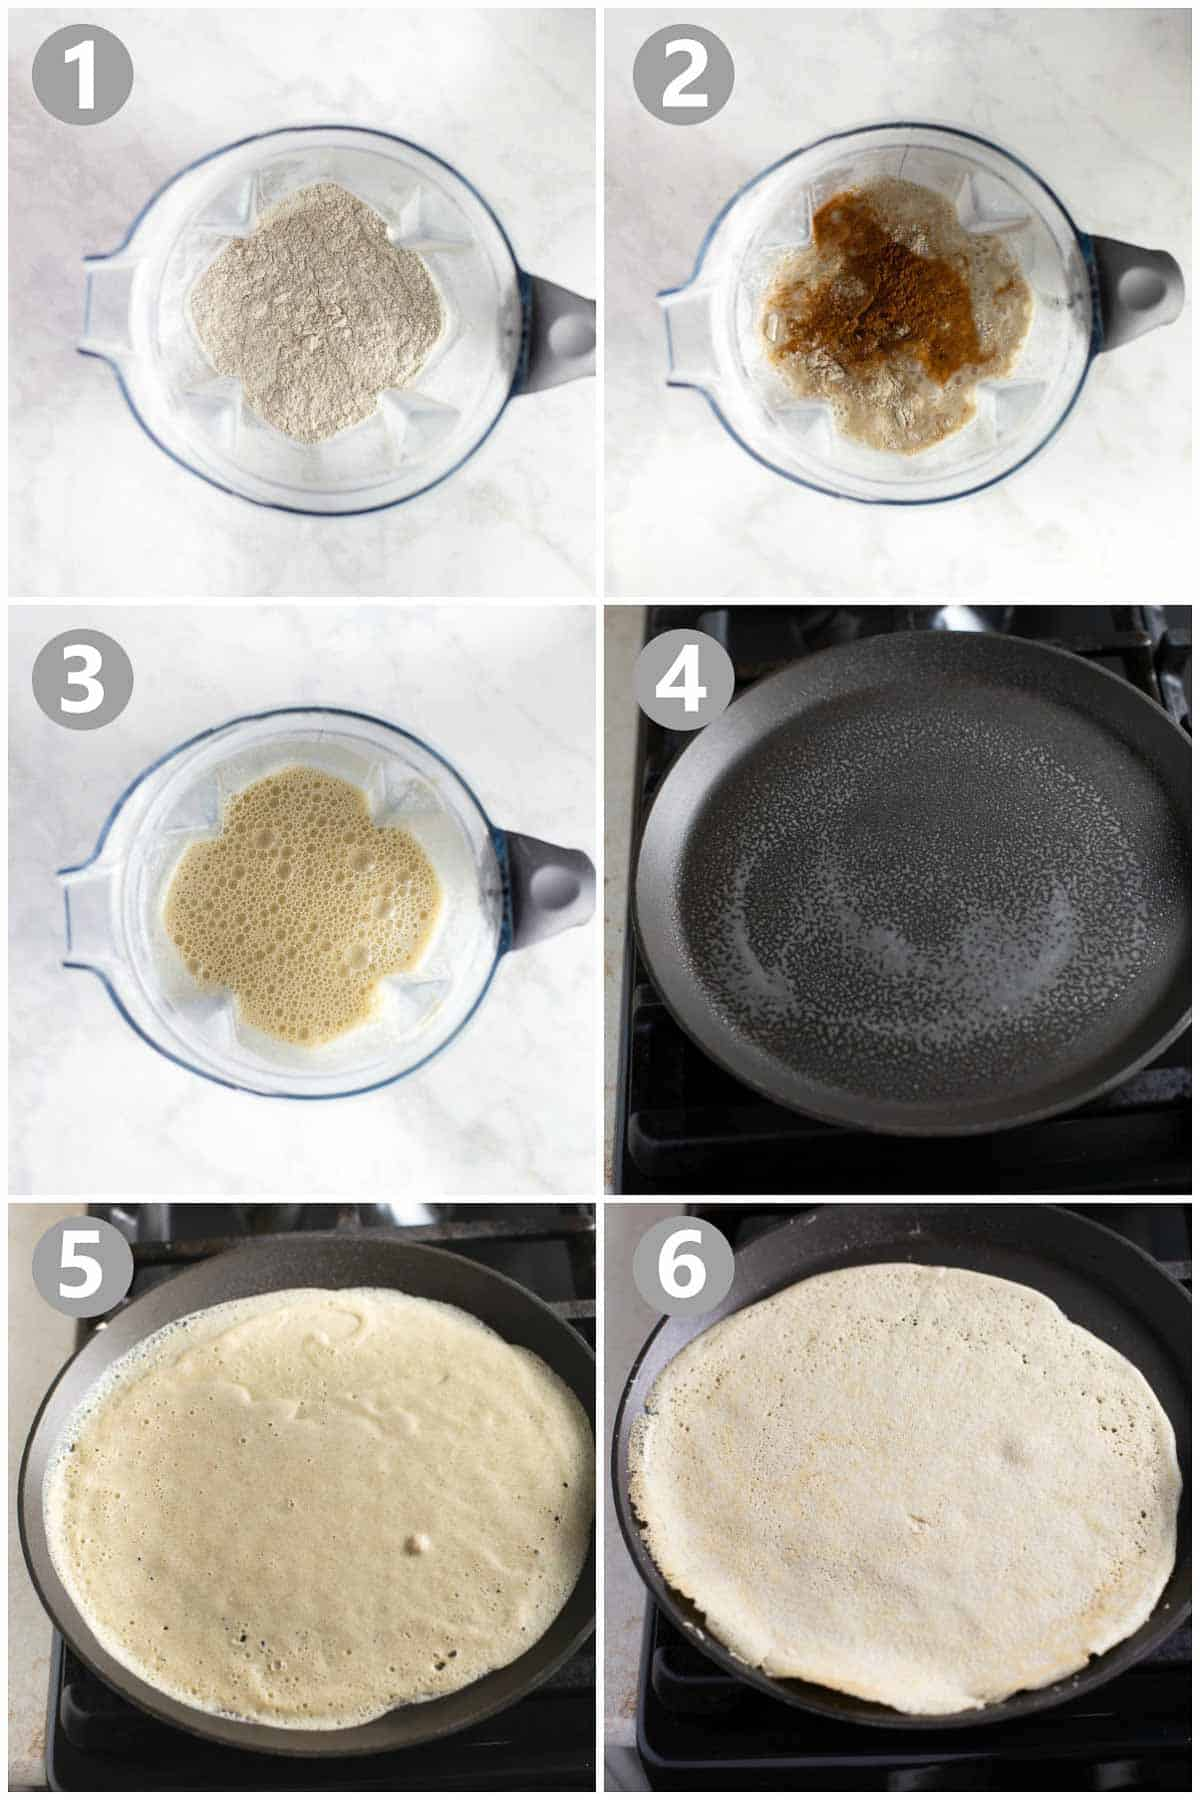 step-by-step instructions for how to make buckwheat crepes